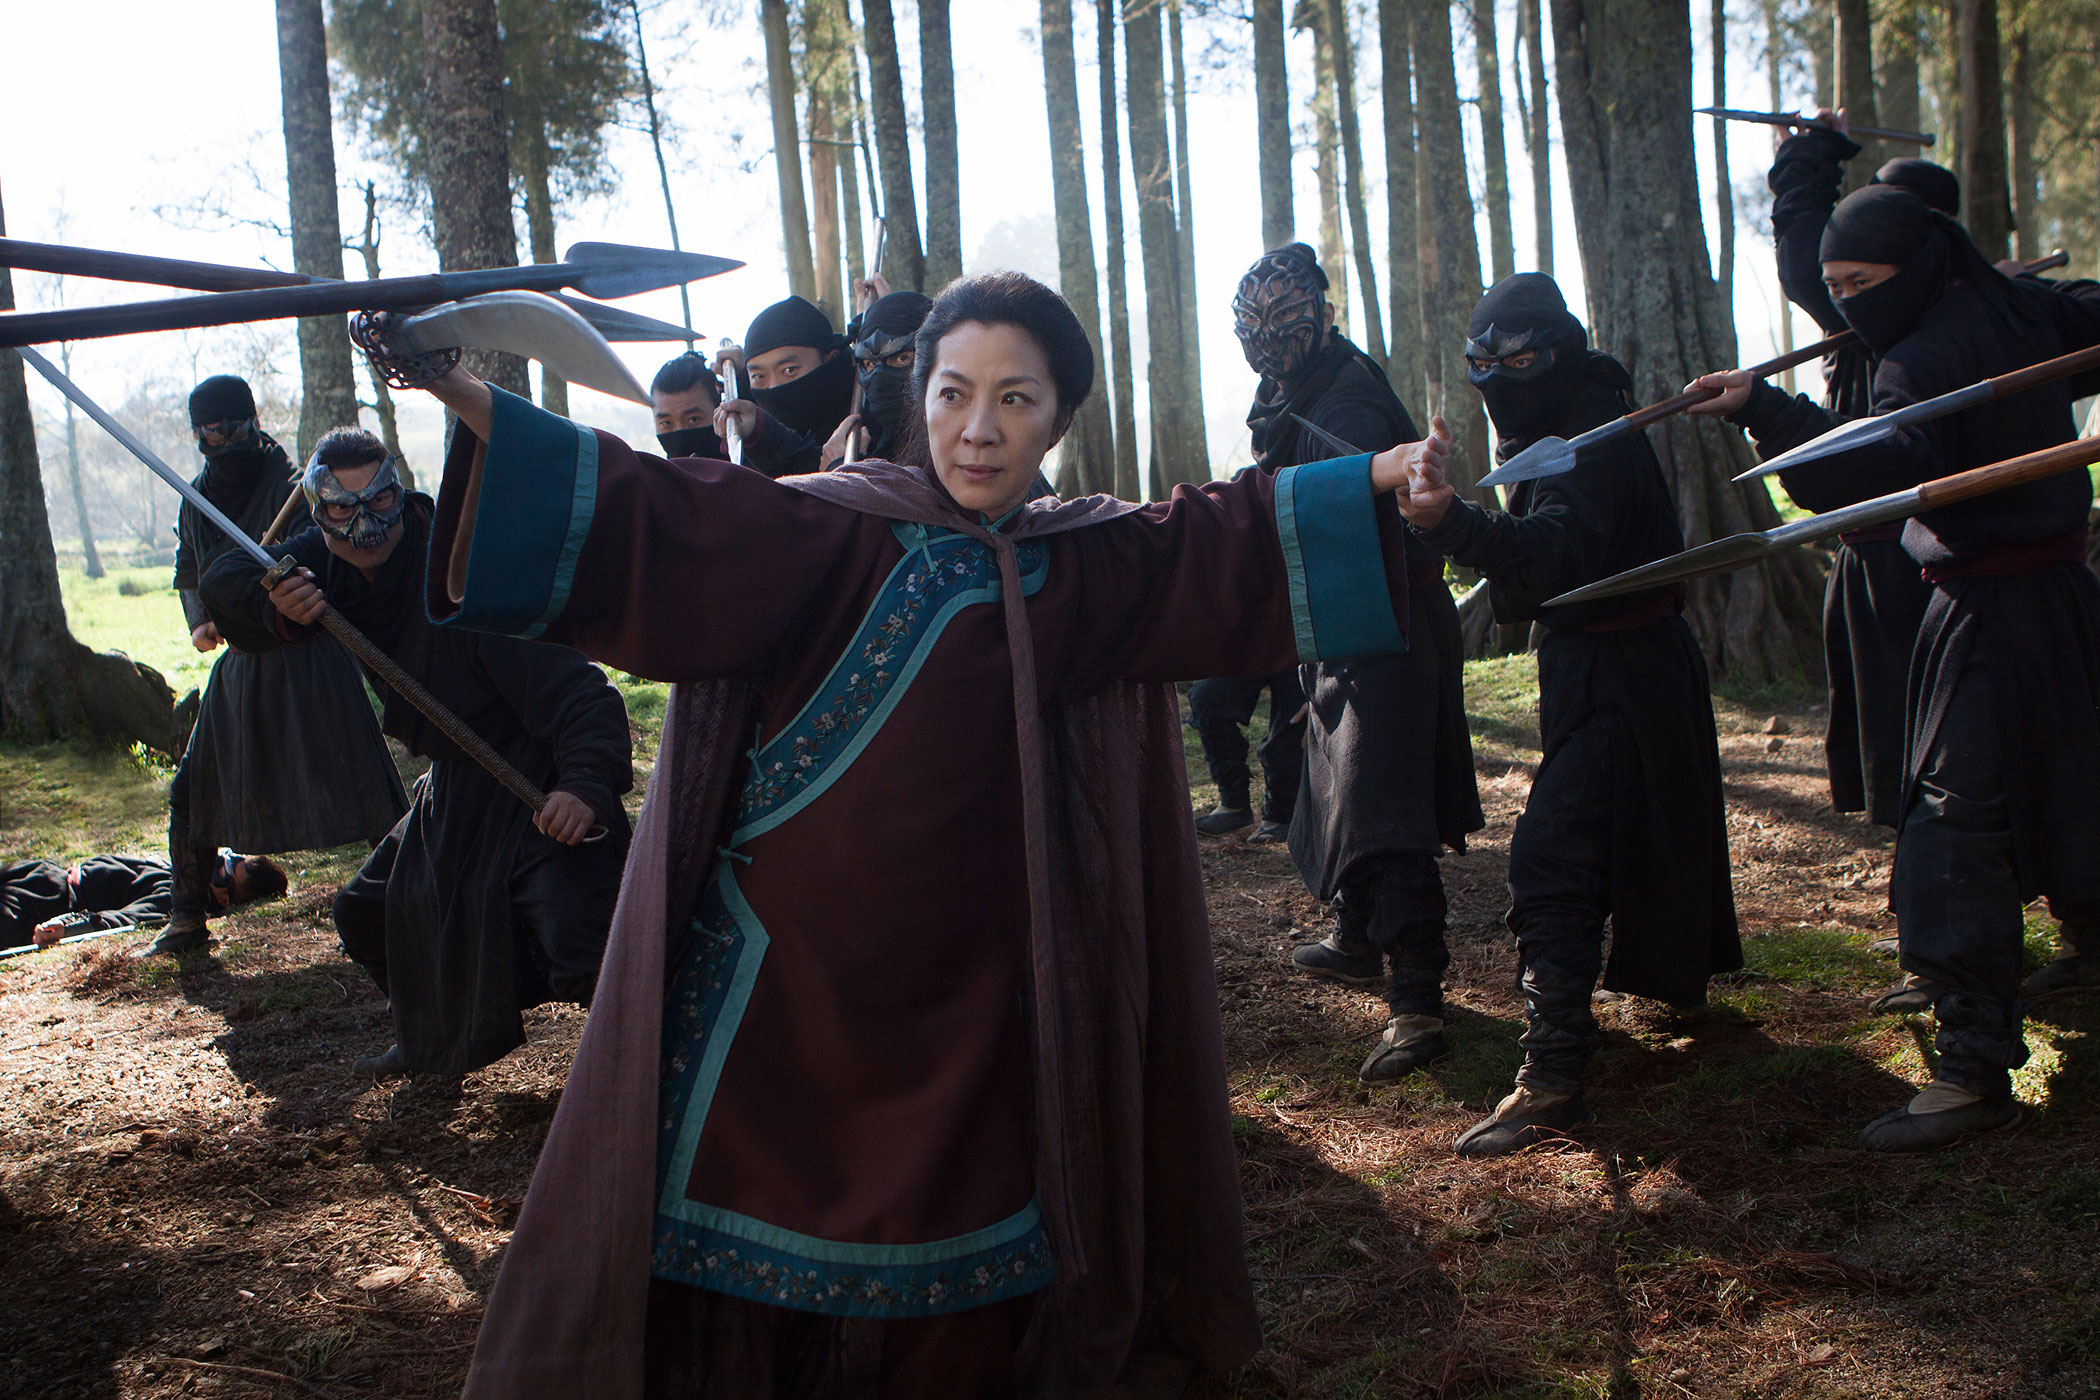 Michelle Yeoh will reprise her role as Yu Shu-Lien in Crouching Tiger, Hidden Dragon: The Green Legend